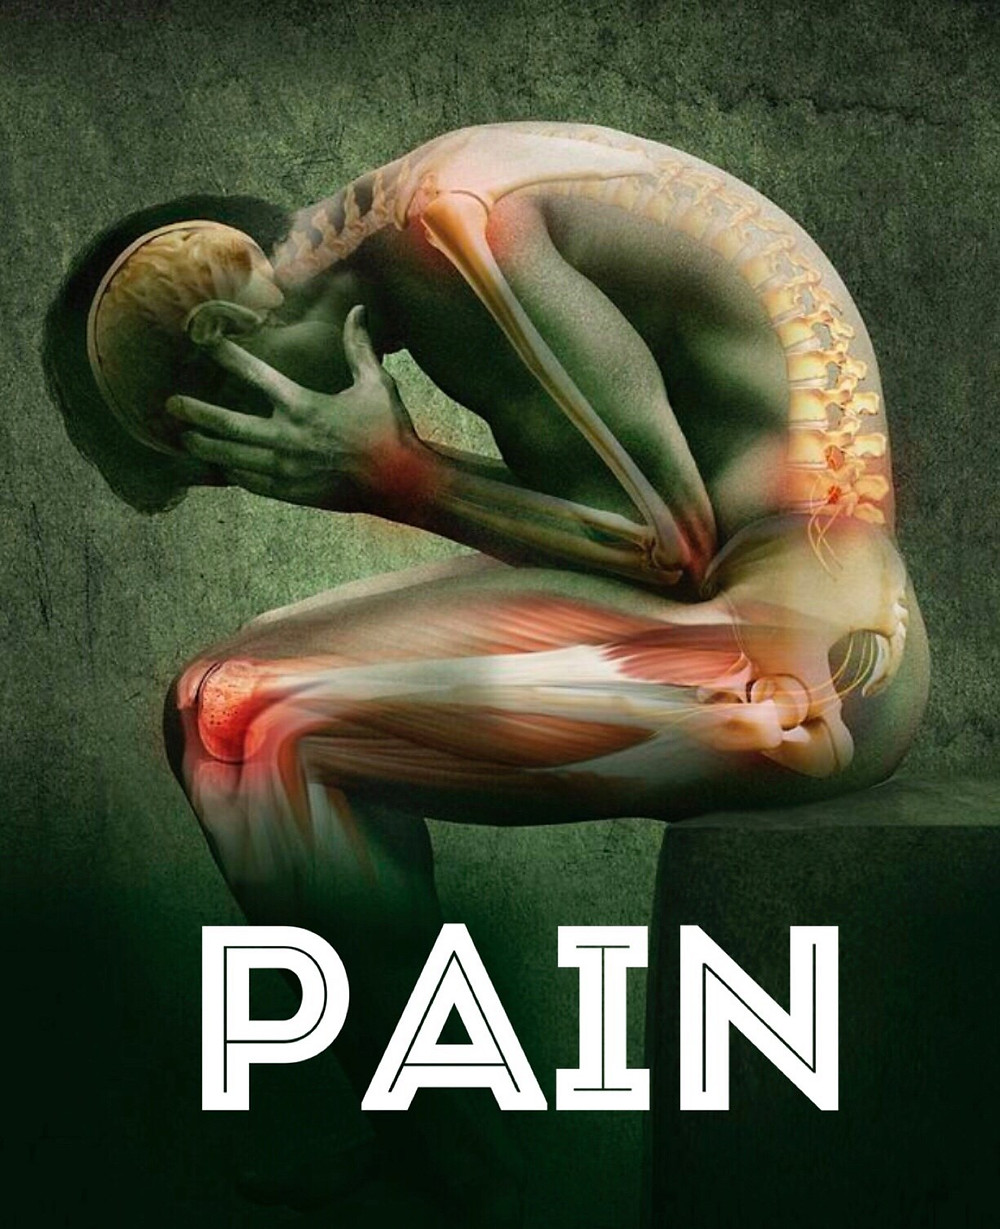 Pain and healing with plant medicine